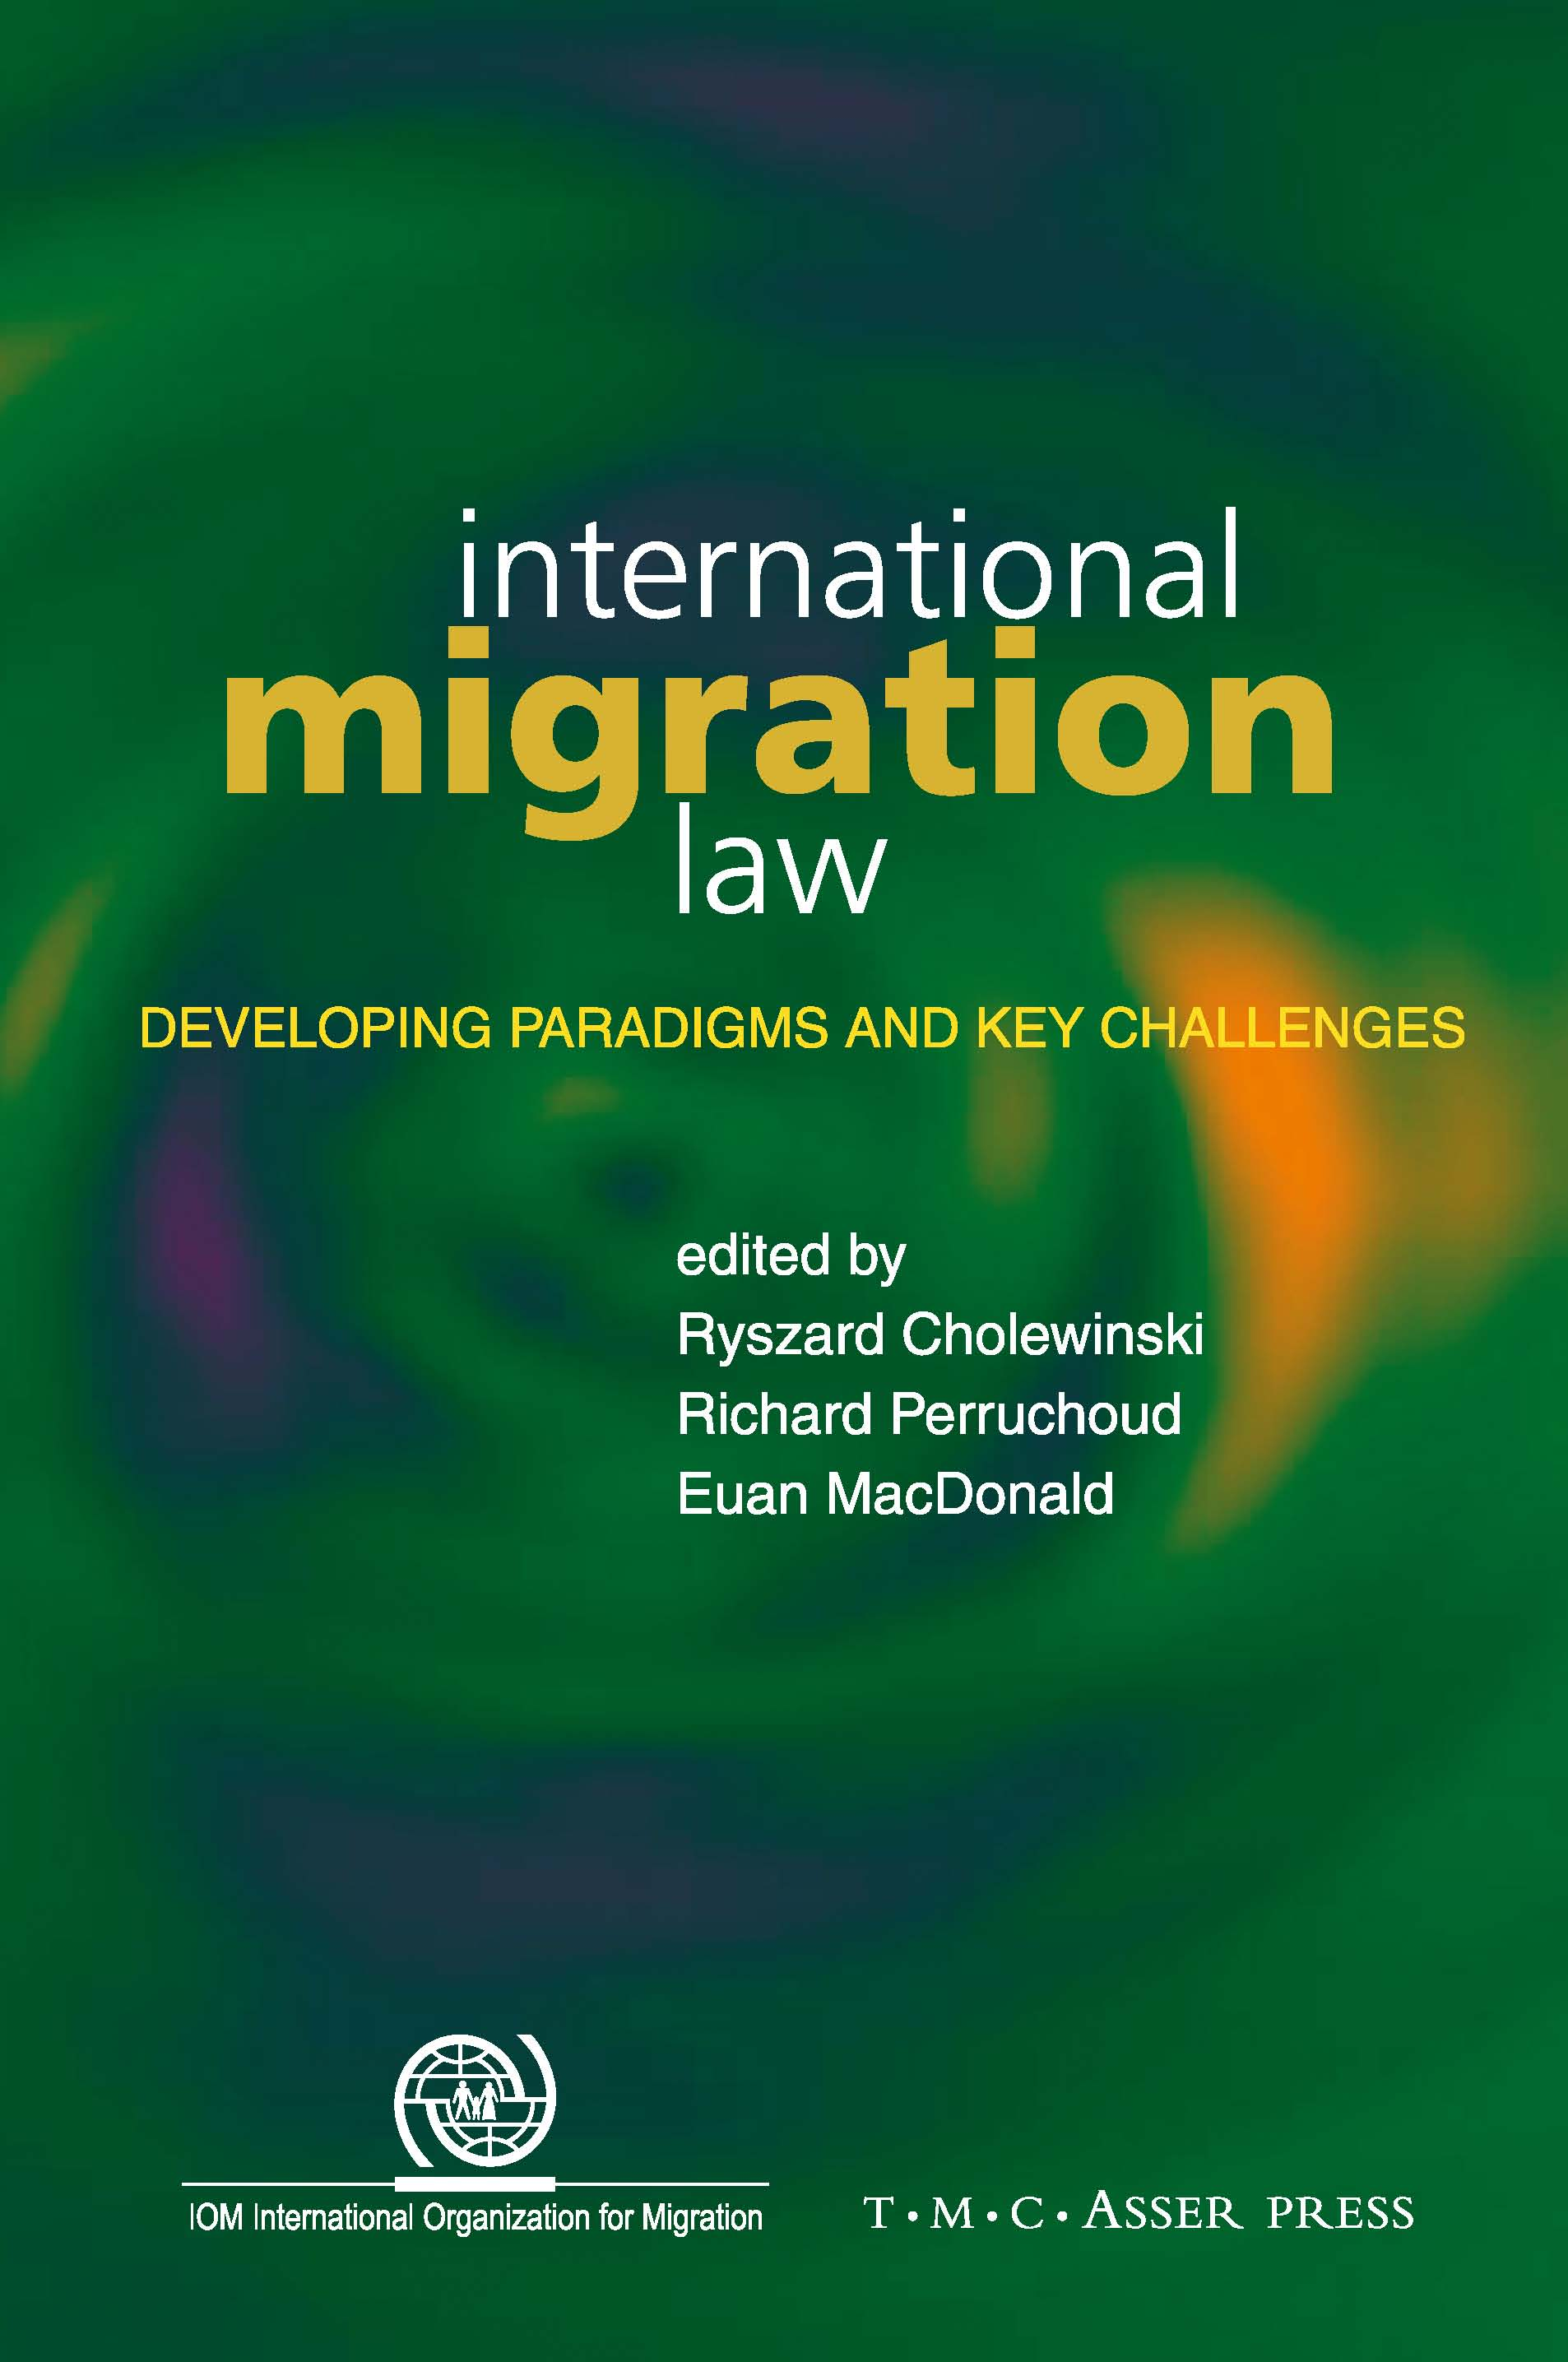 International Migration Law - Developing Paradigms and Key Challenges